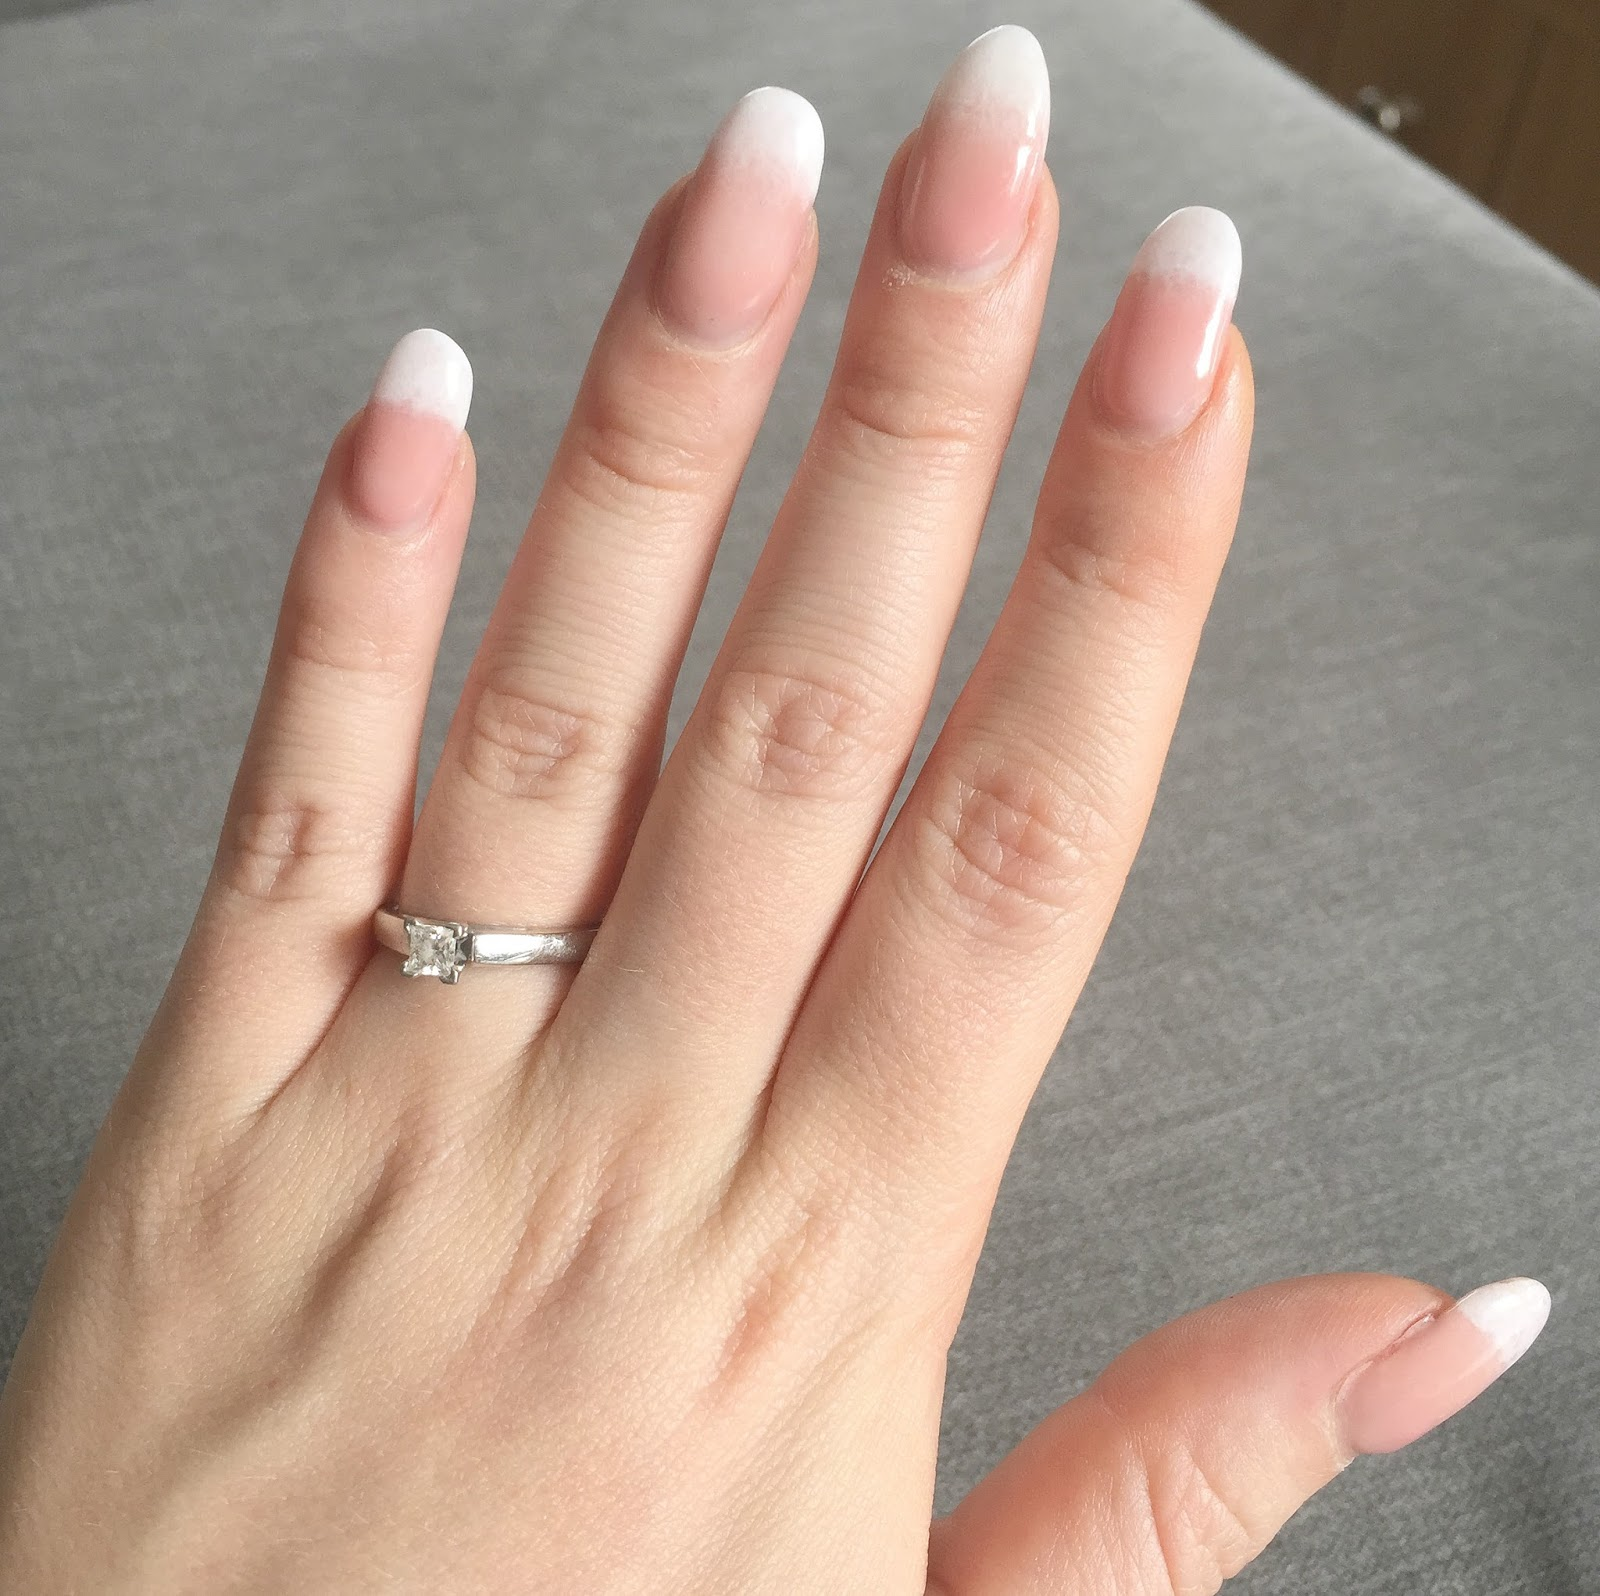 NOTD: Ombre French Nails - Jenna Suth